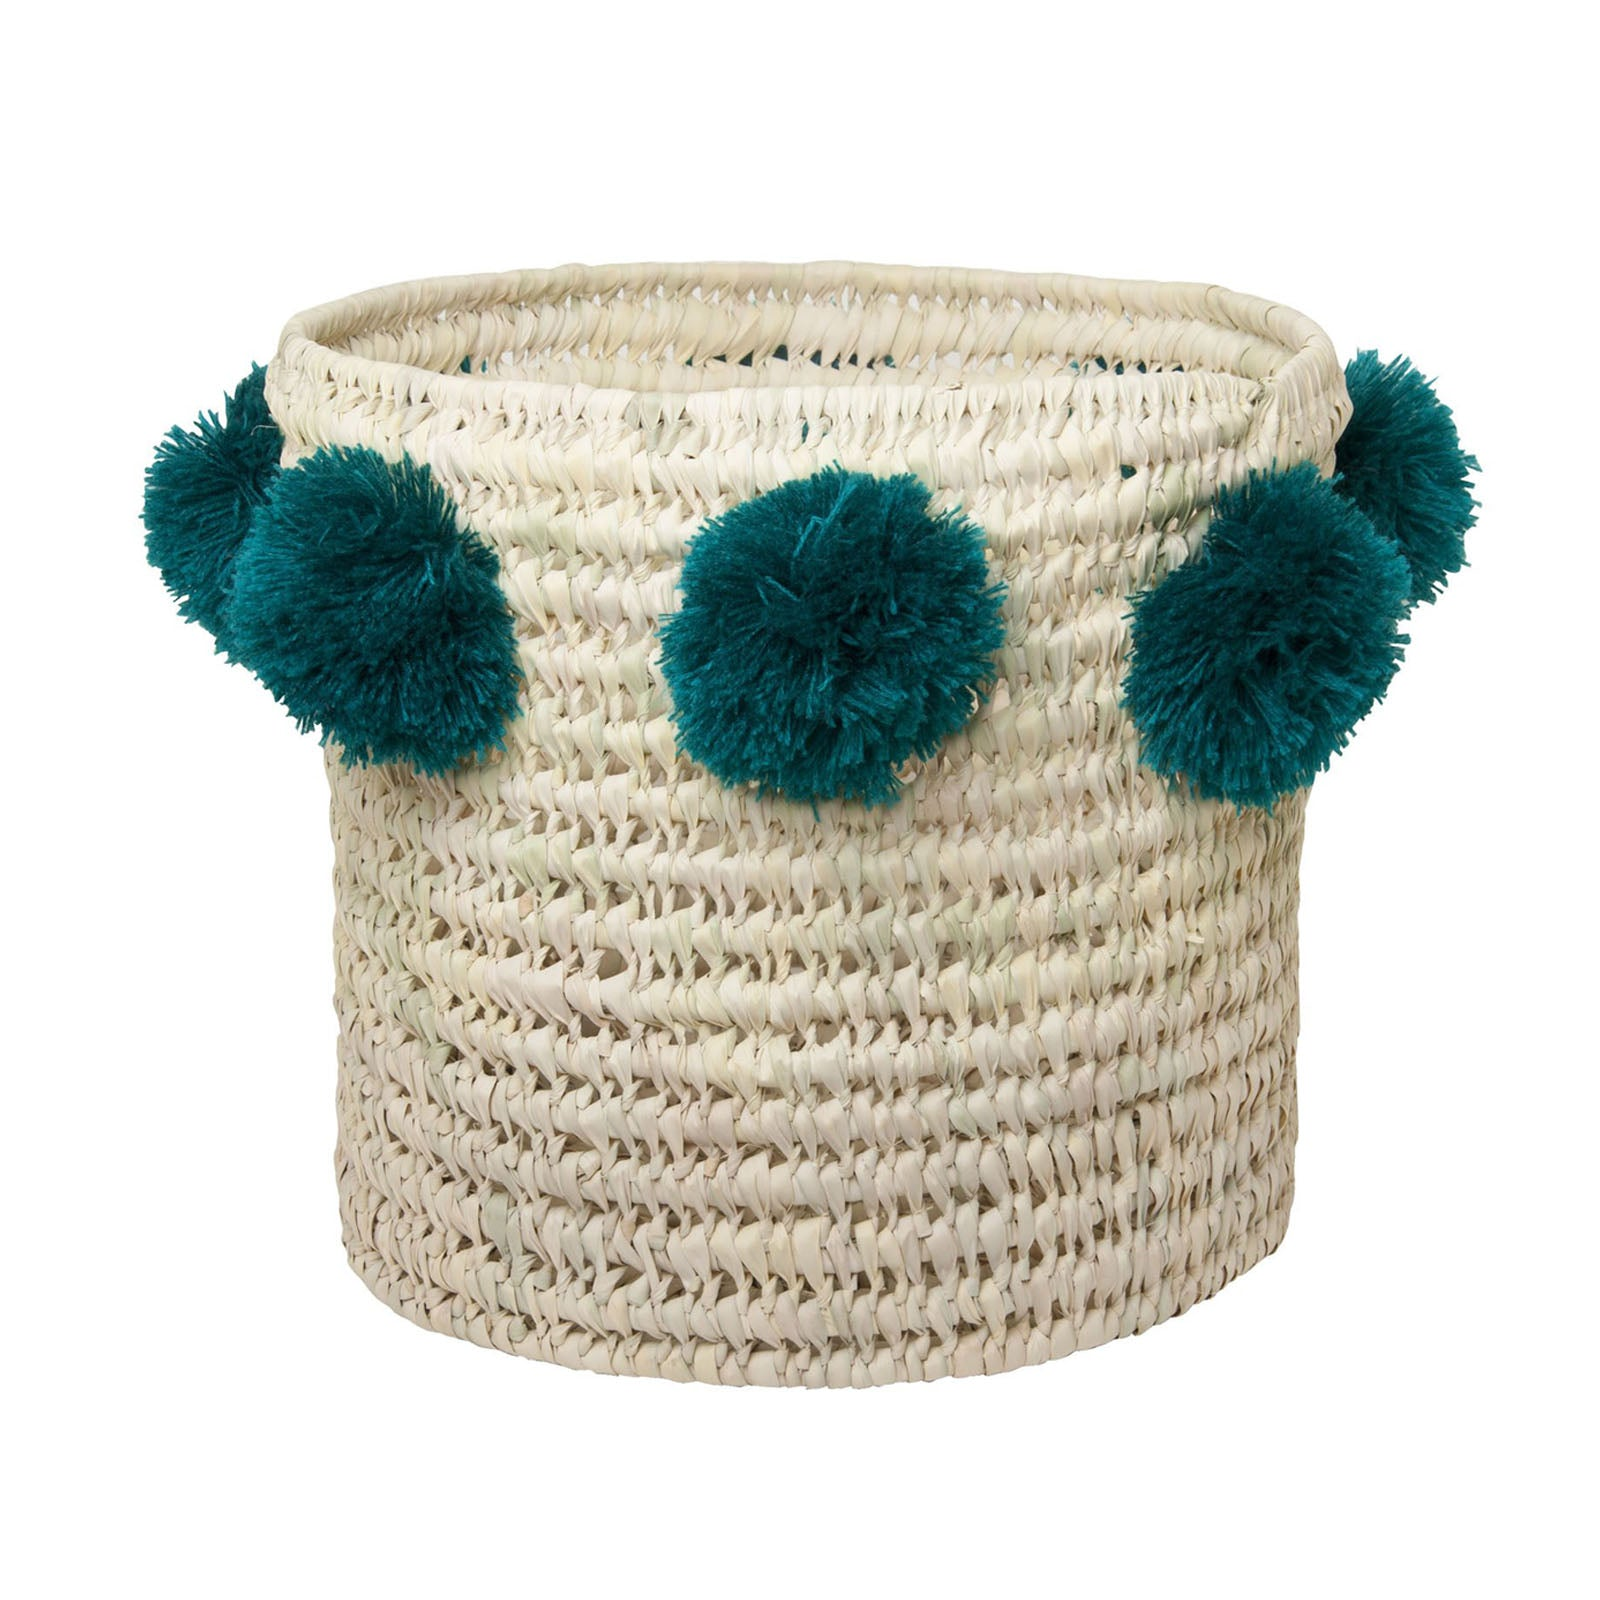 LOUIS BASKET BIG IN NATURAL STRAW + PEACOCK BLUE TASSELS